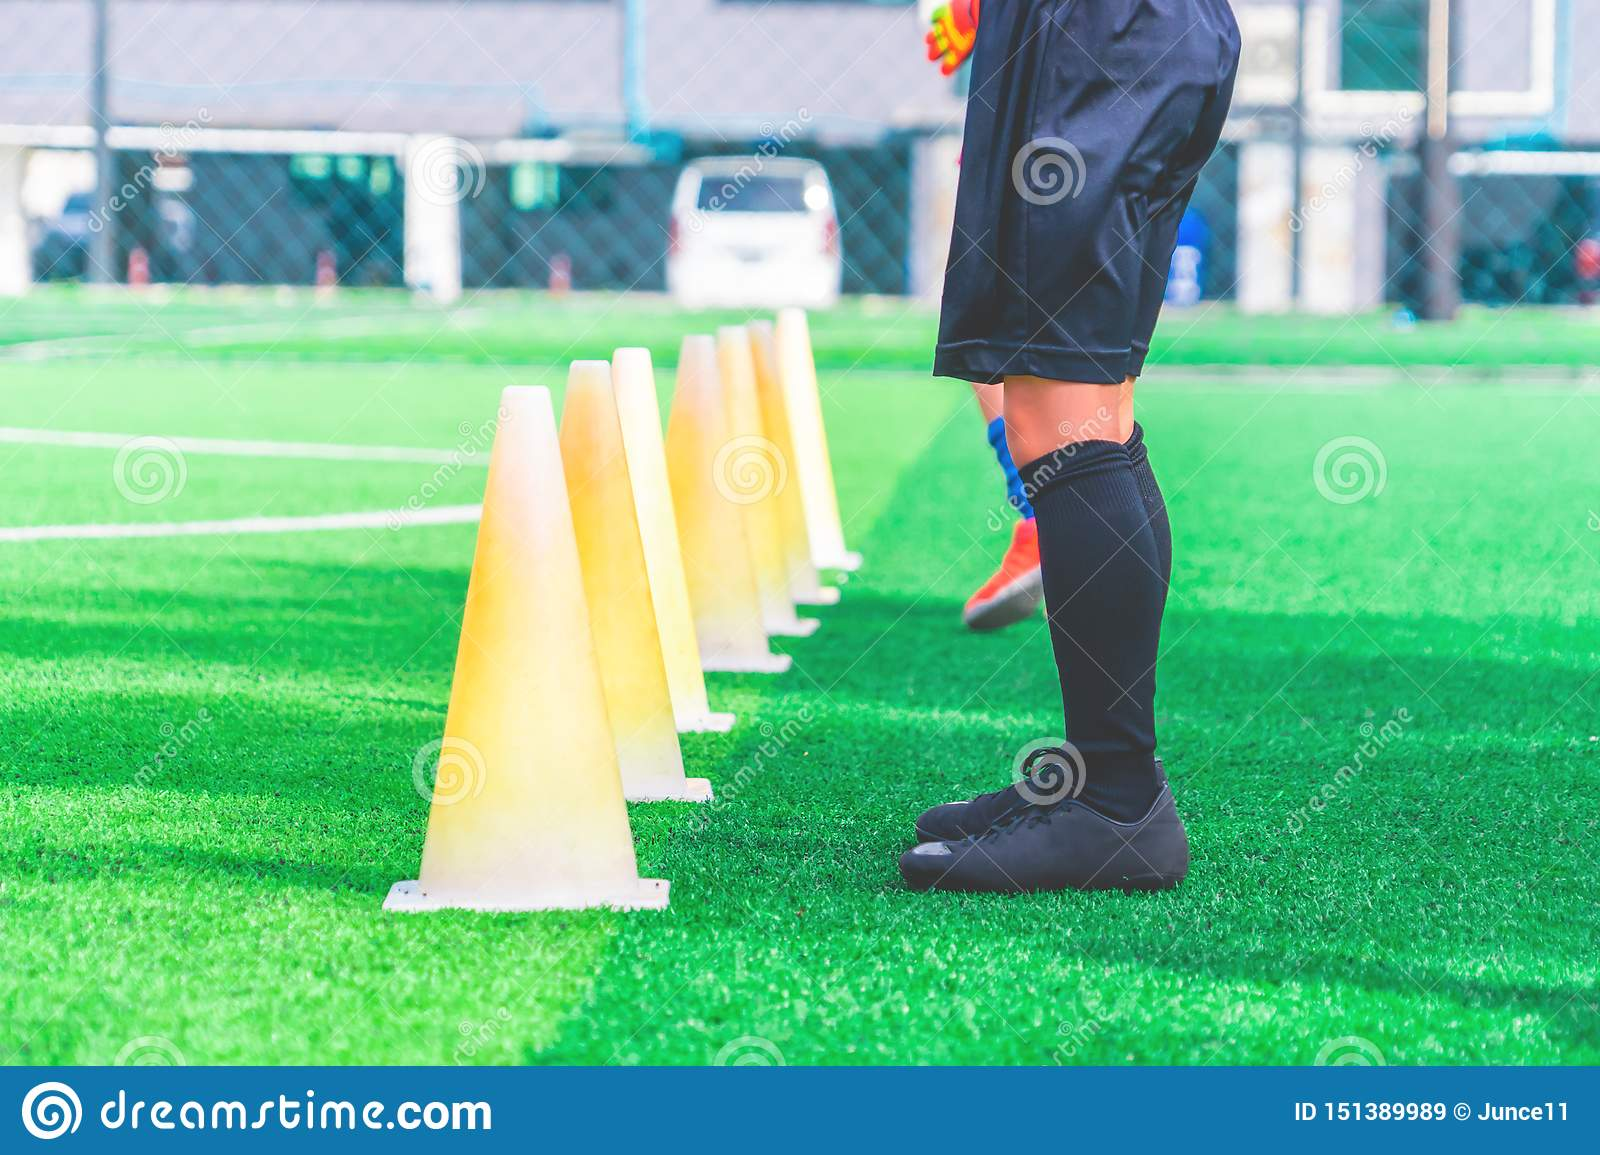 Children with soccer boots training on training cone on soccer ground